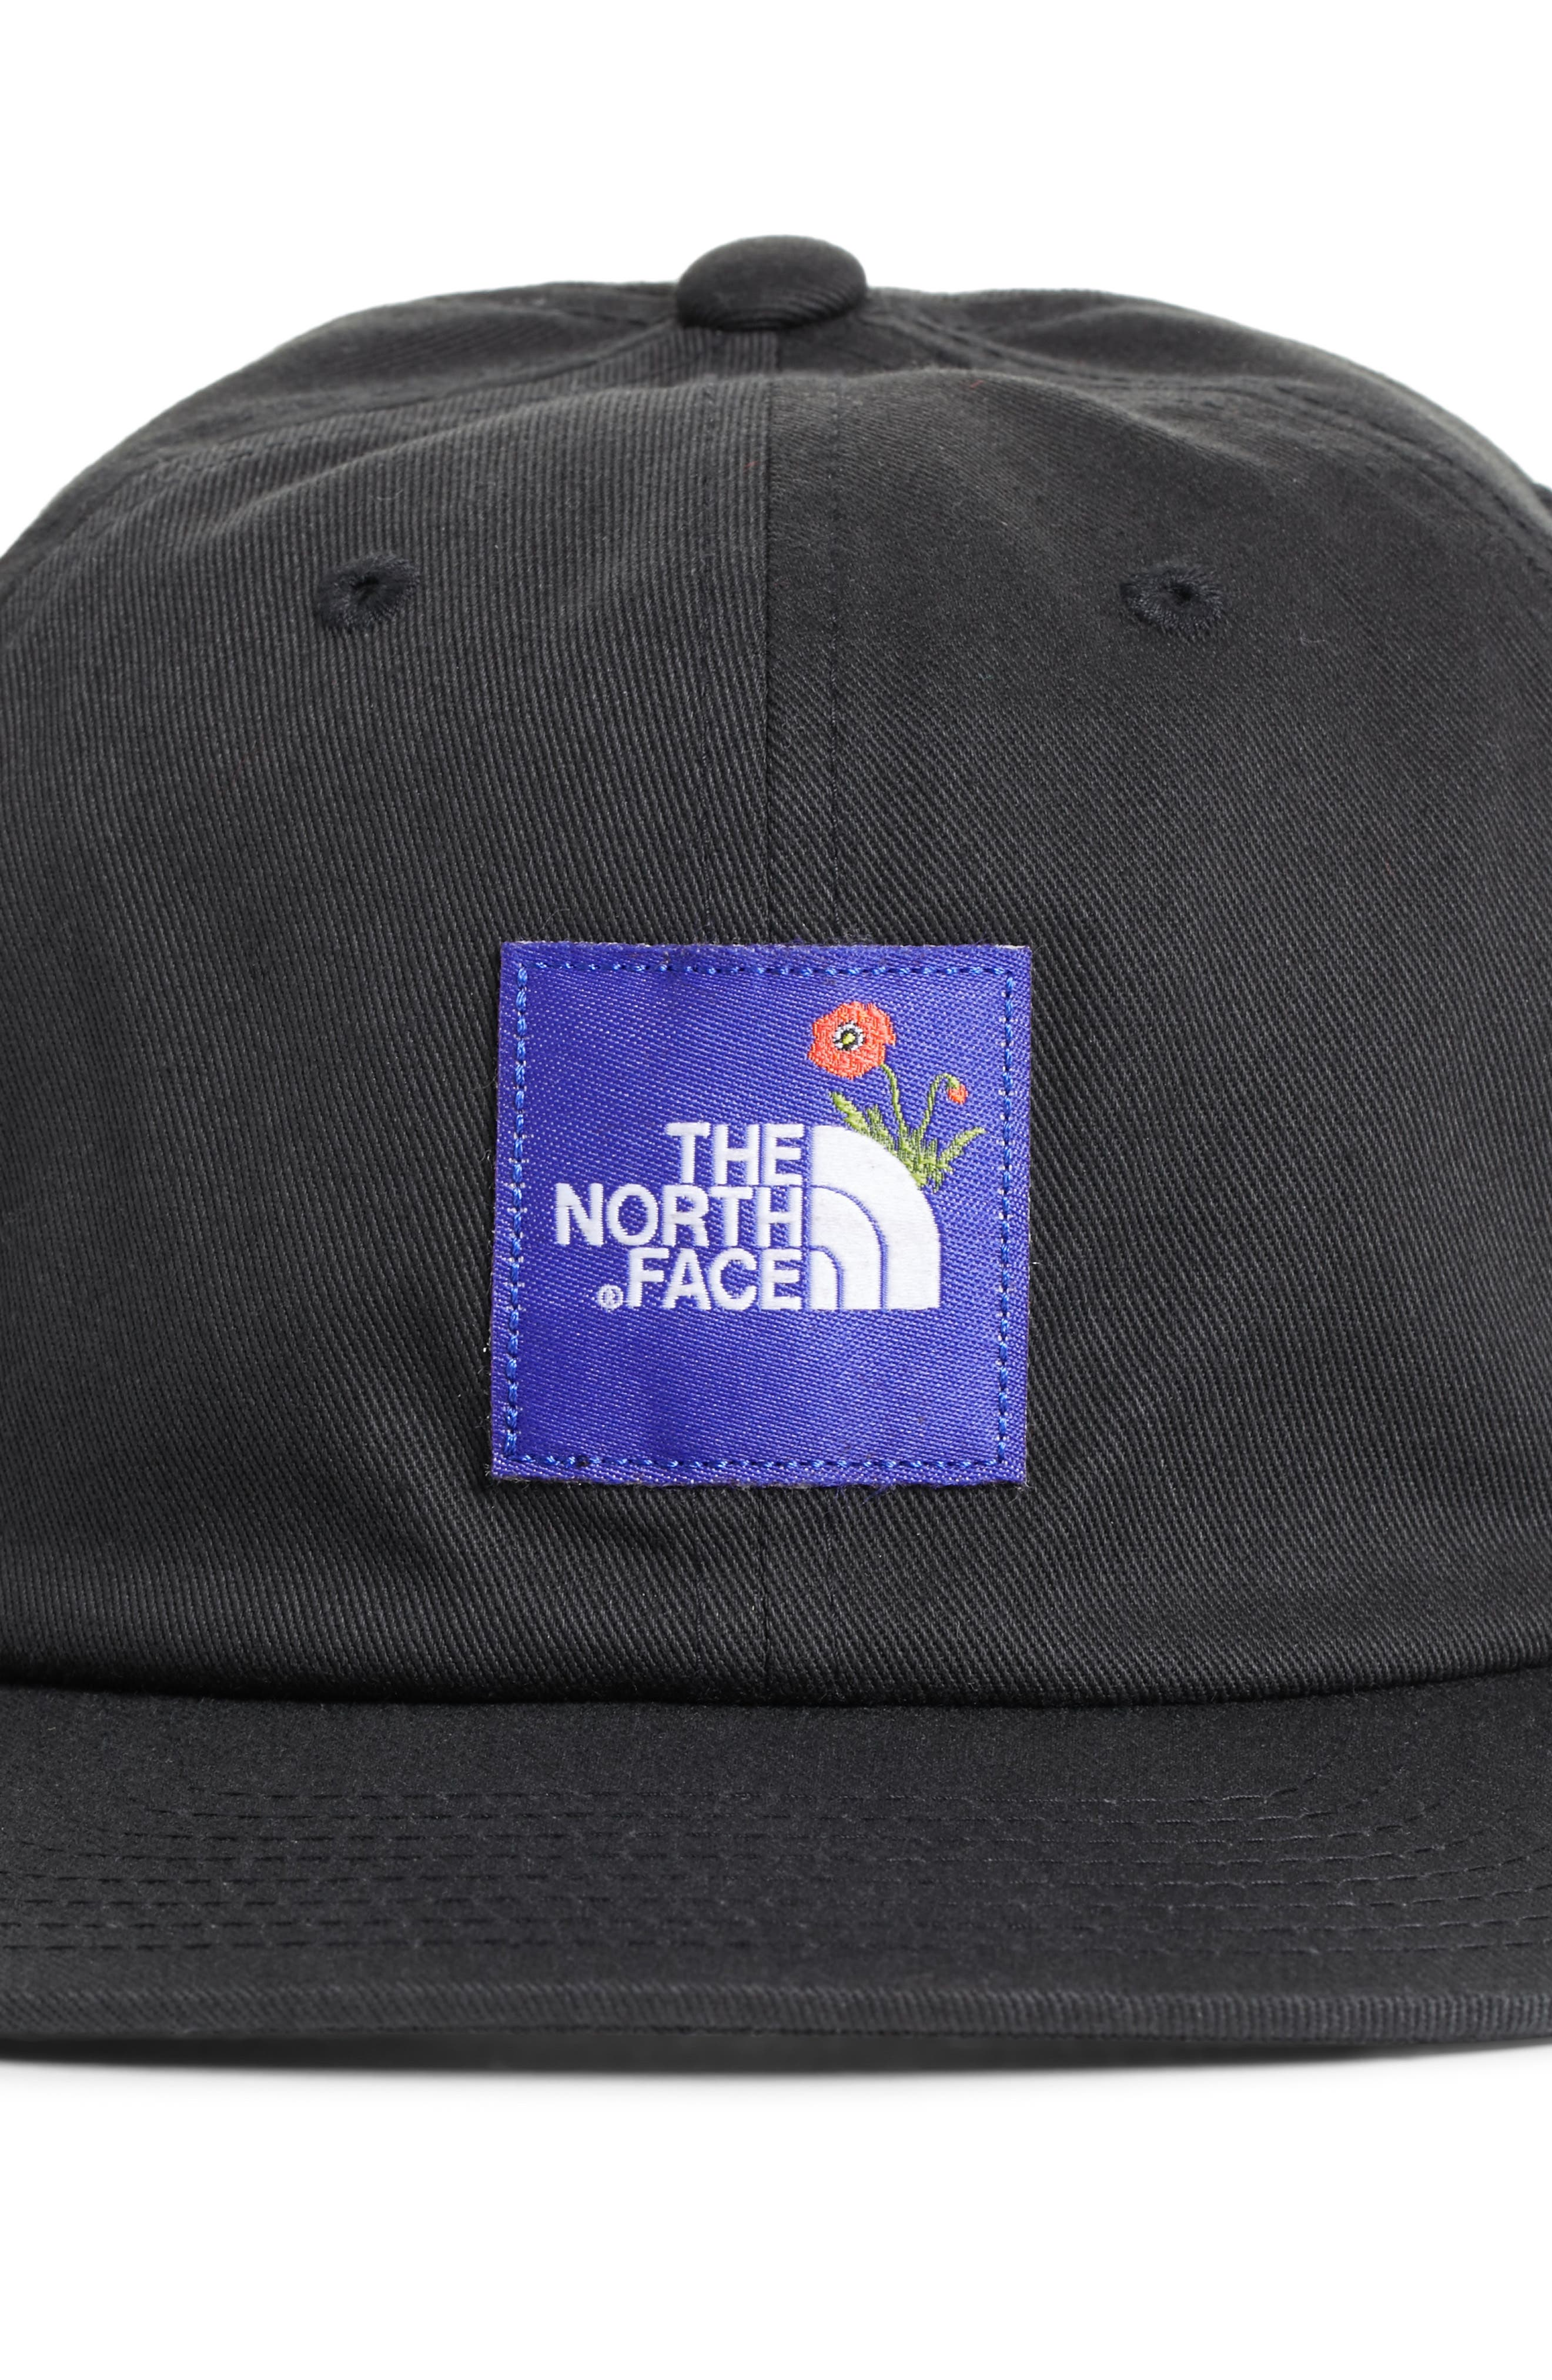 Poppy Adjustable Cap,                             Alternate thumbnail 3, color,                             Tnf Black